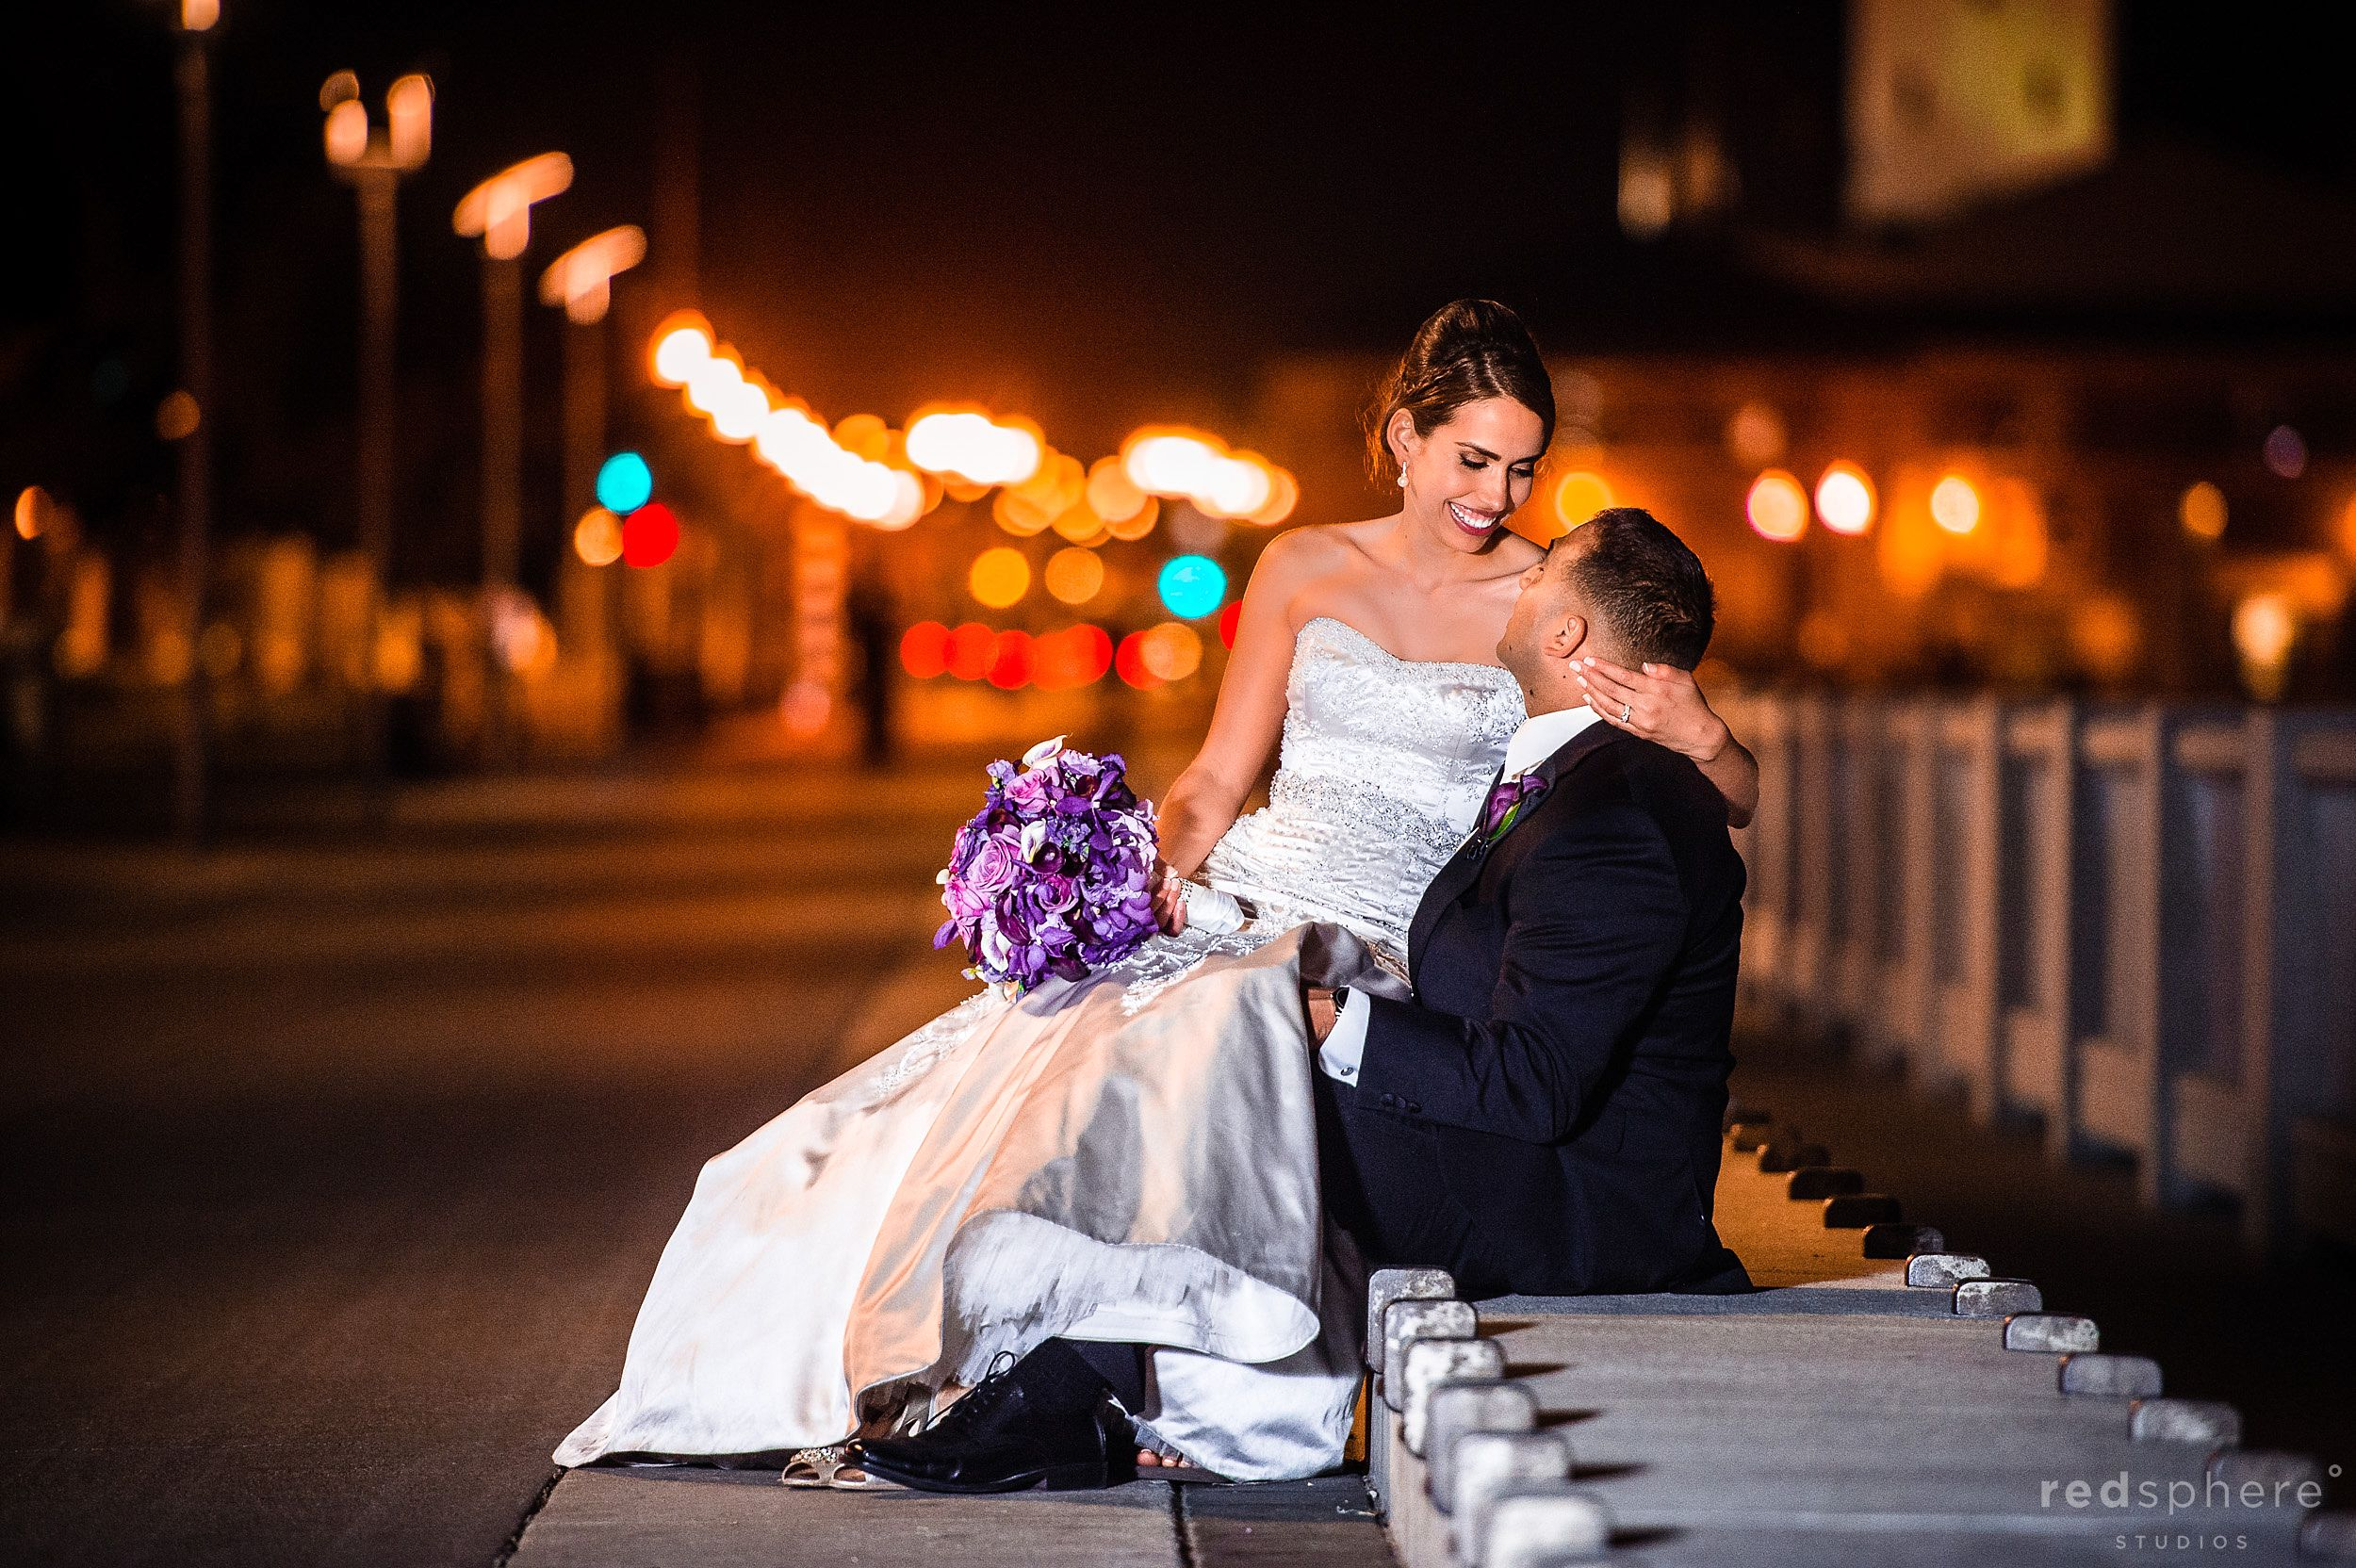 Bride Sits On Grooms Lap at Pier 7, San Francisco Nightlife Bokeh